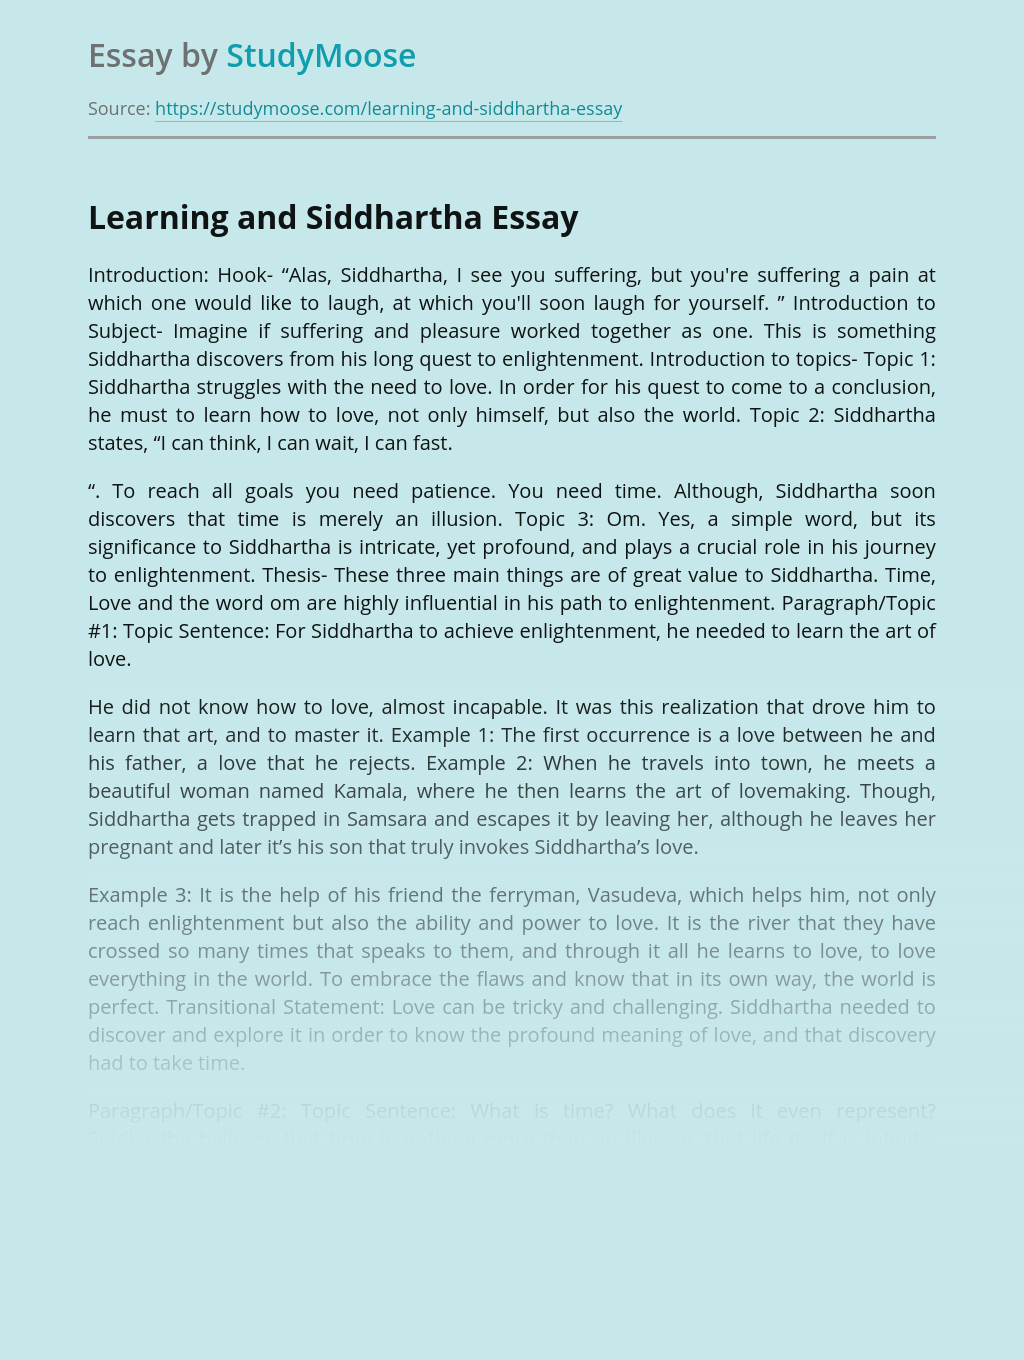 Learning and Siddhartha